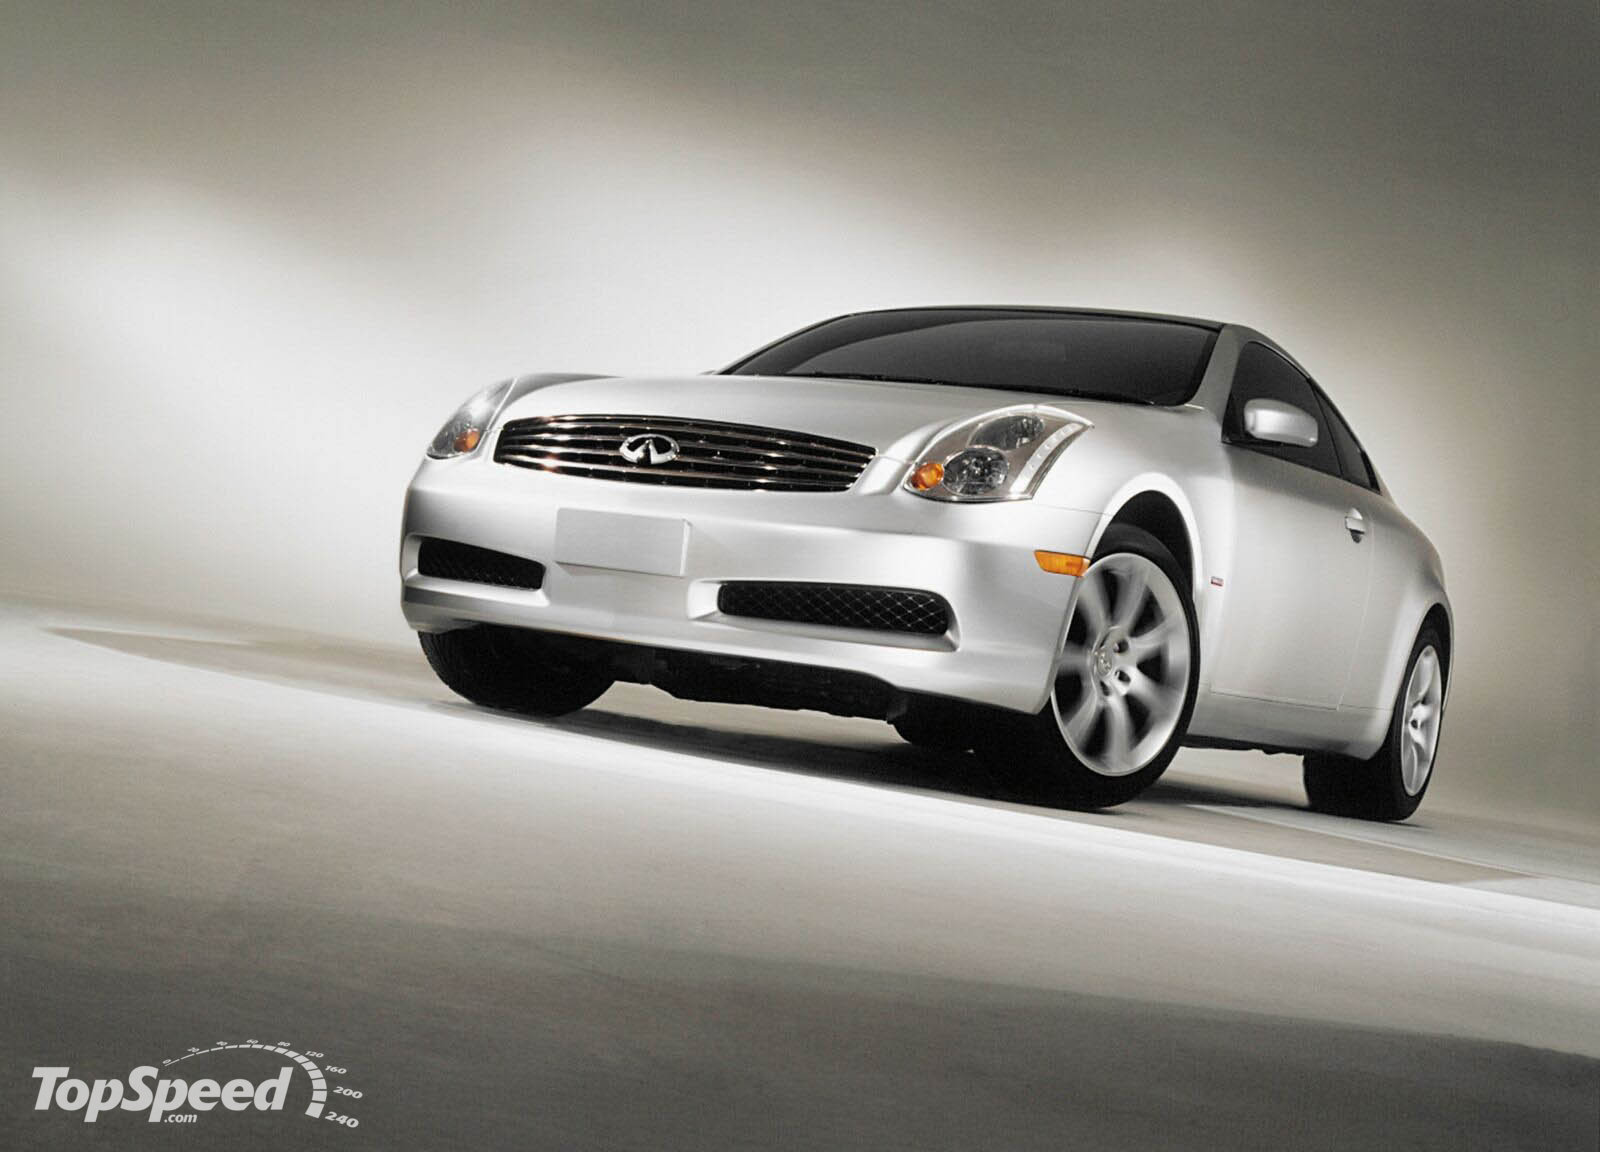 2003 infiniti g35 coupe picture 6311 car review top. Black Bedroom Furniture Sets. Home Design Ideas